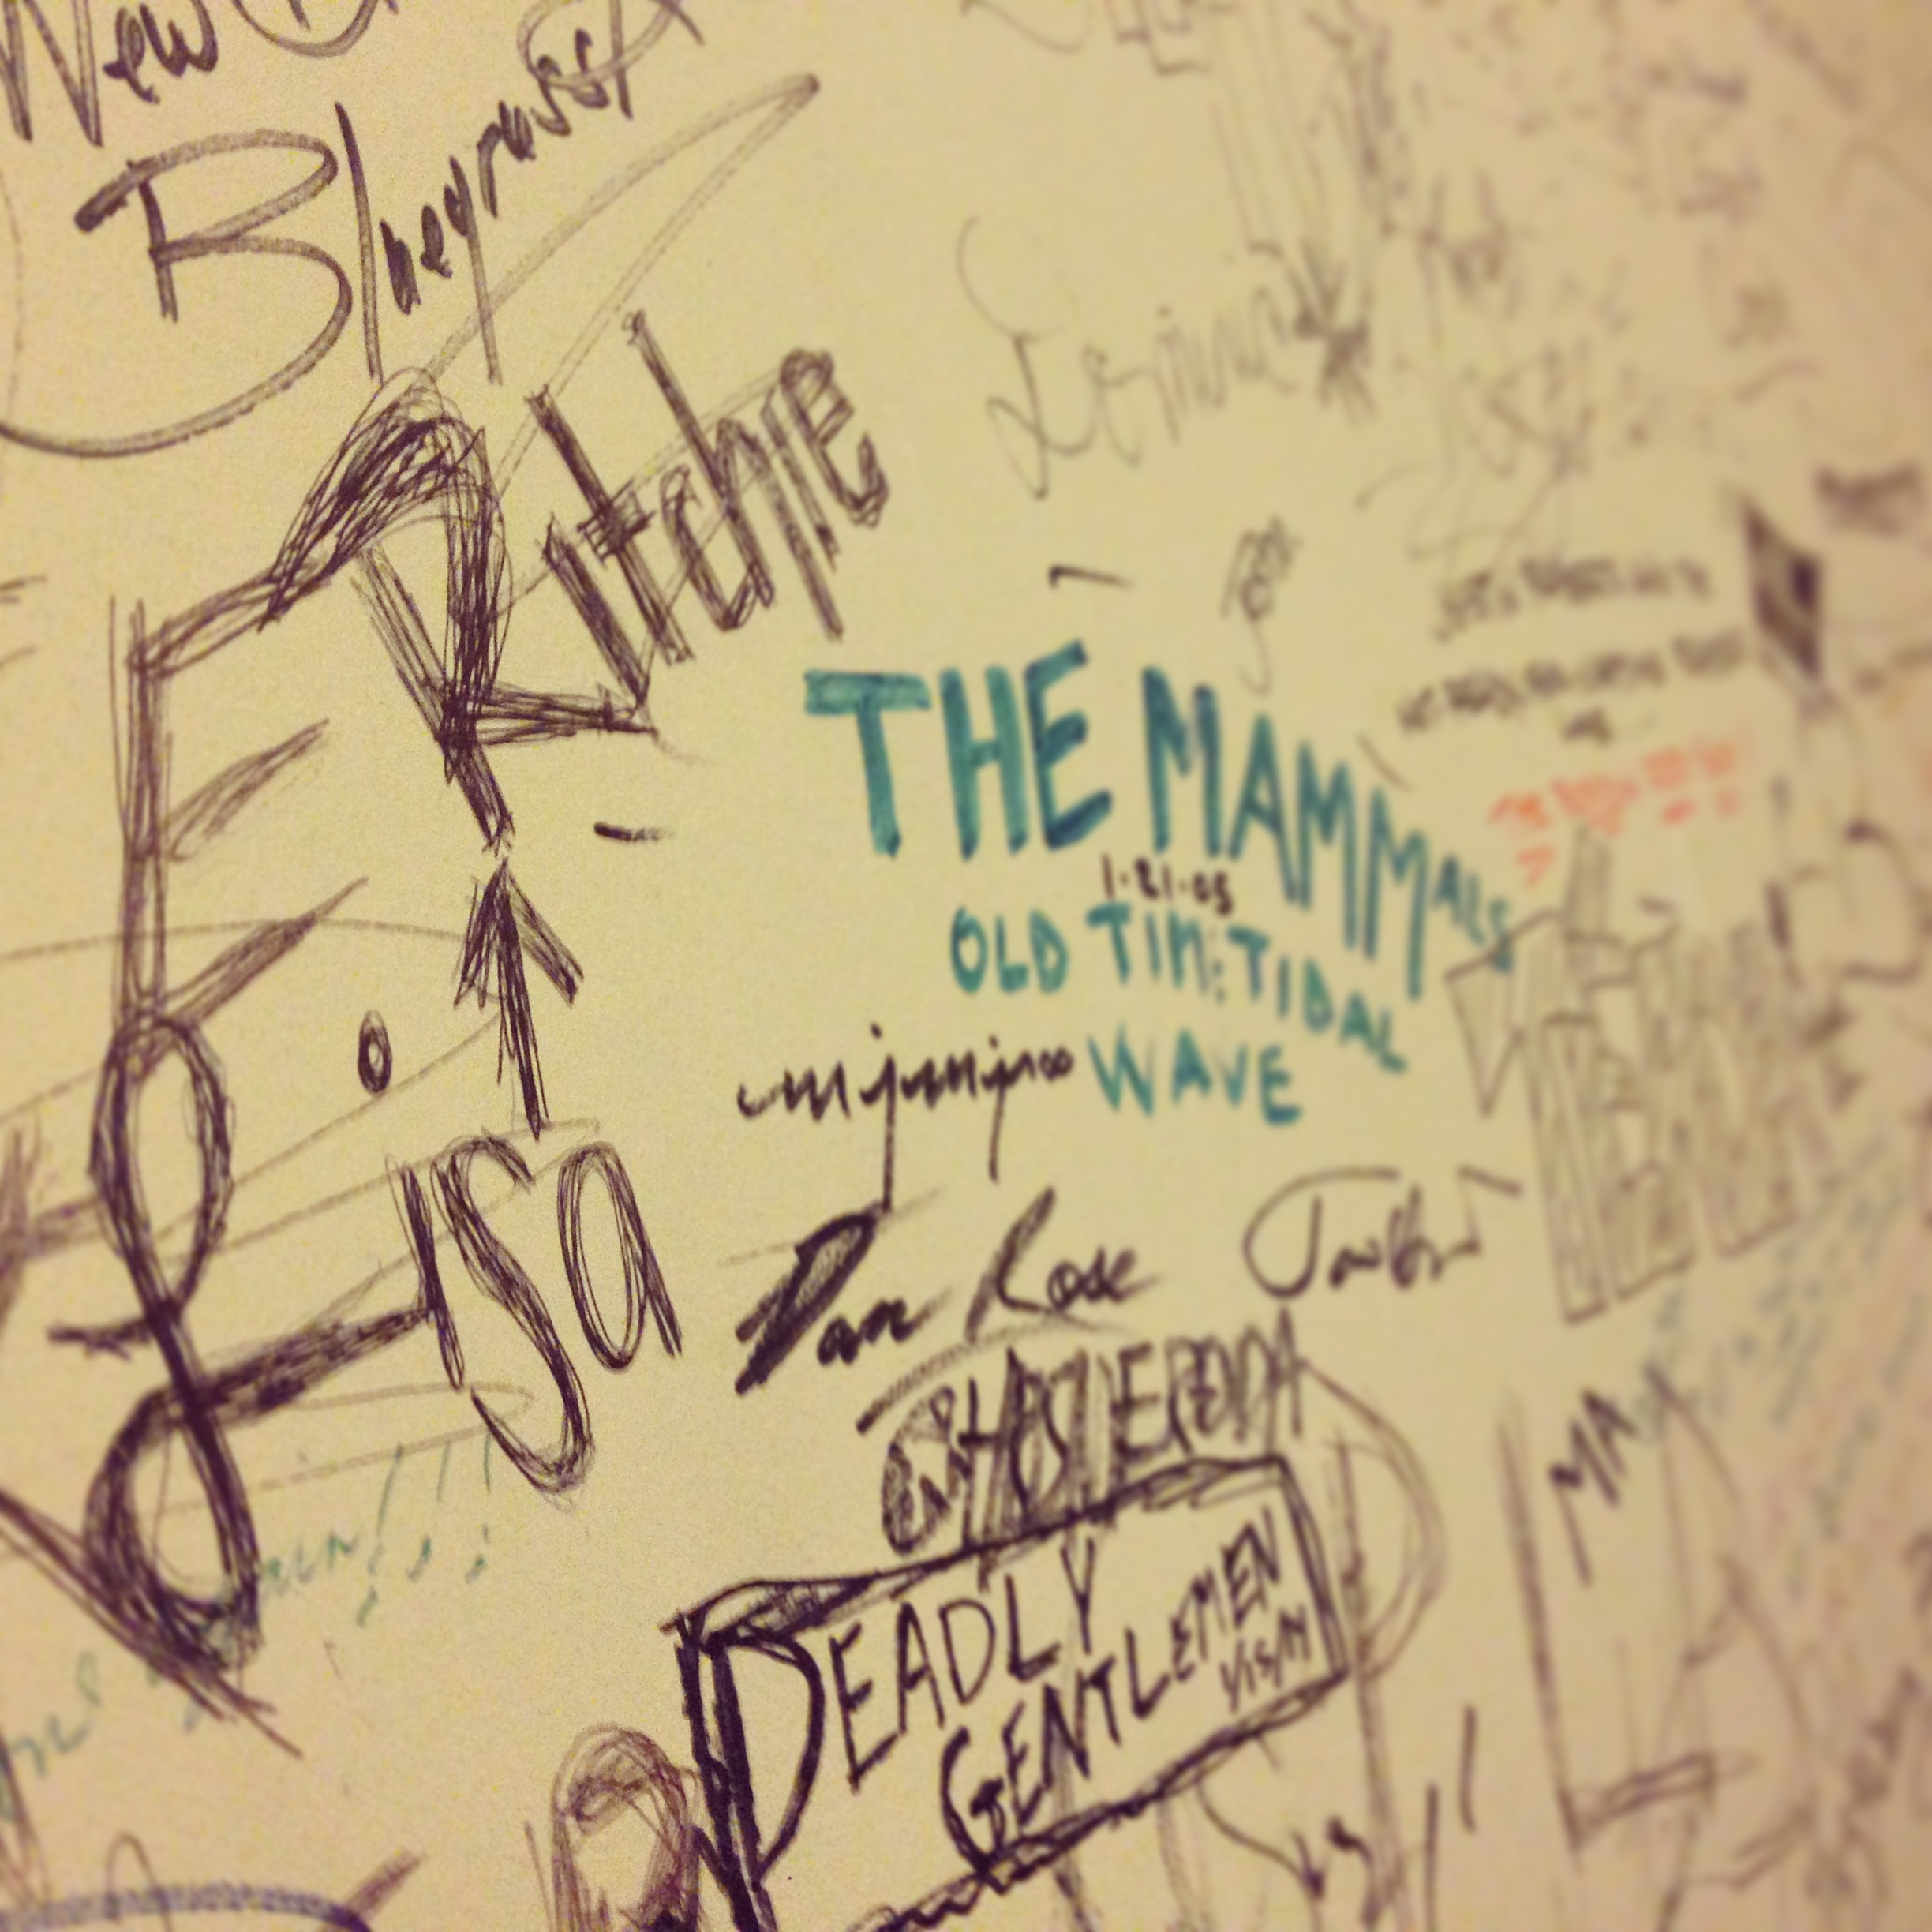 Signed my name on the dressing room wall--next to The Deadly Gentlemen...